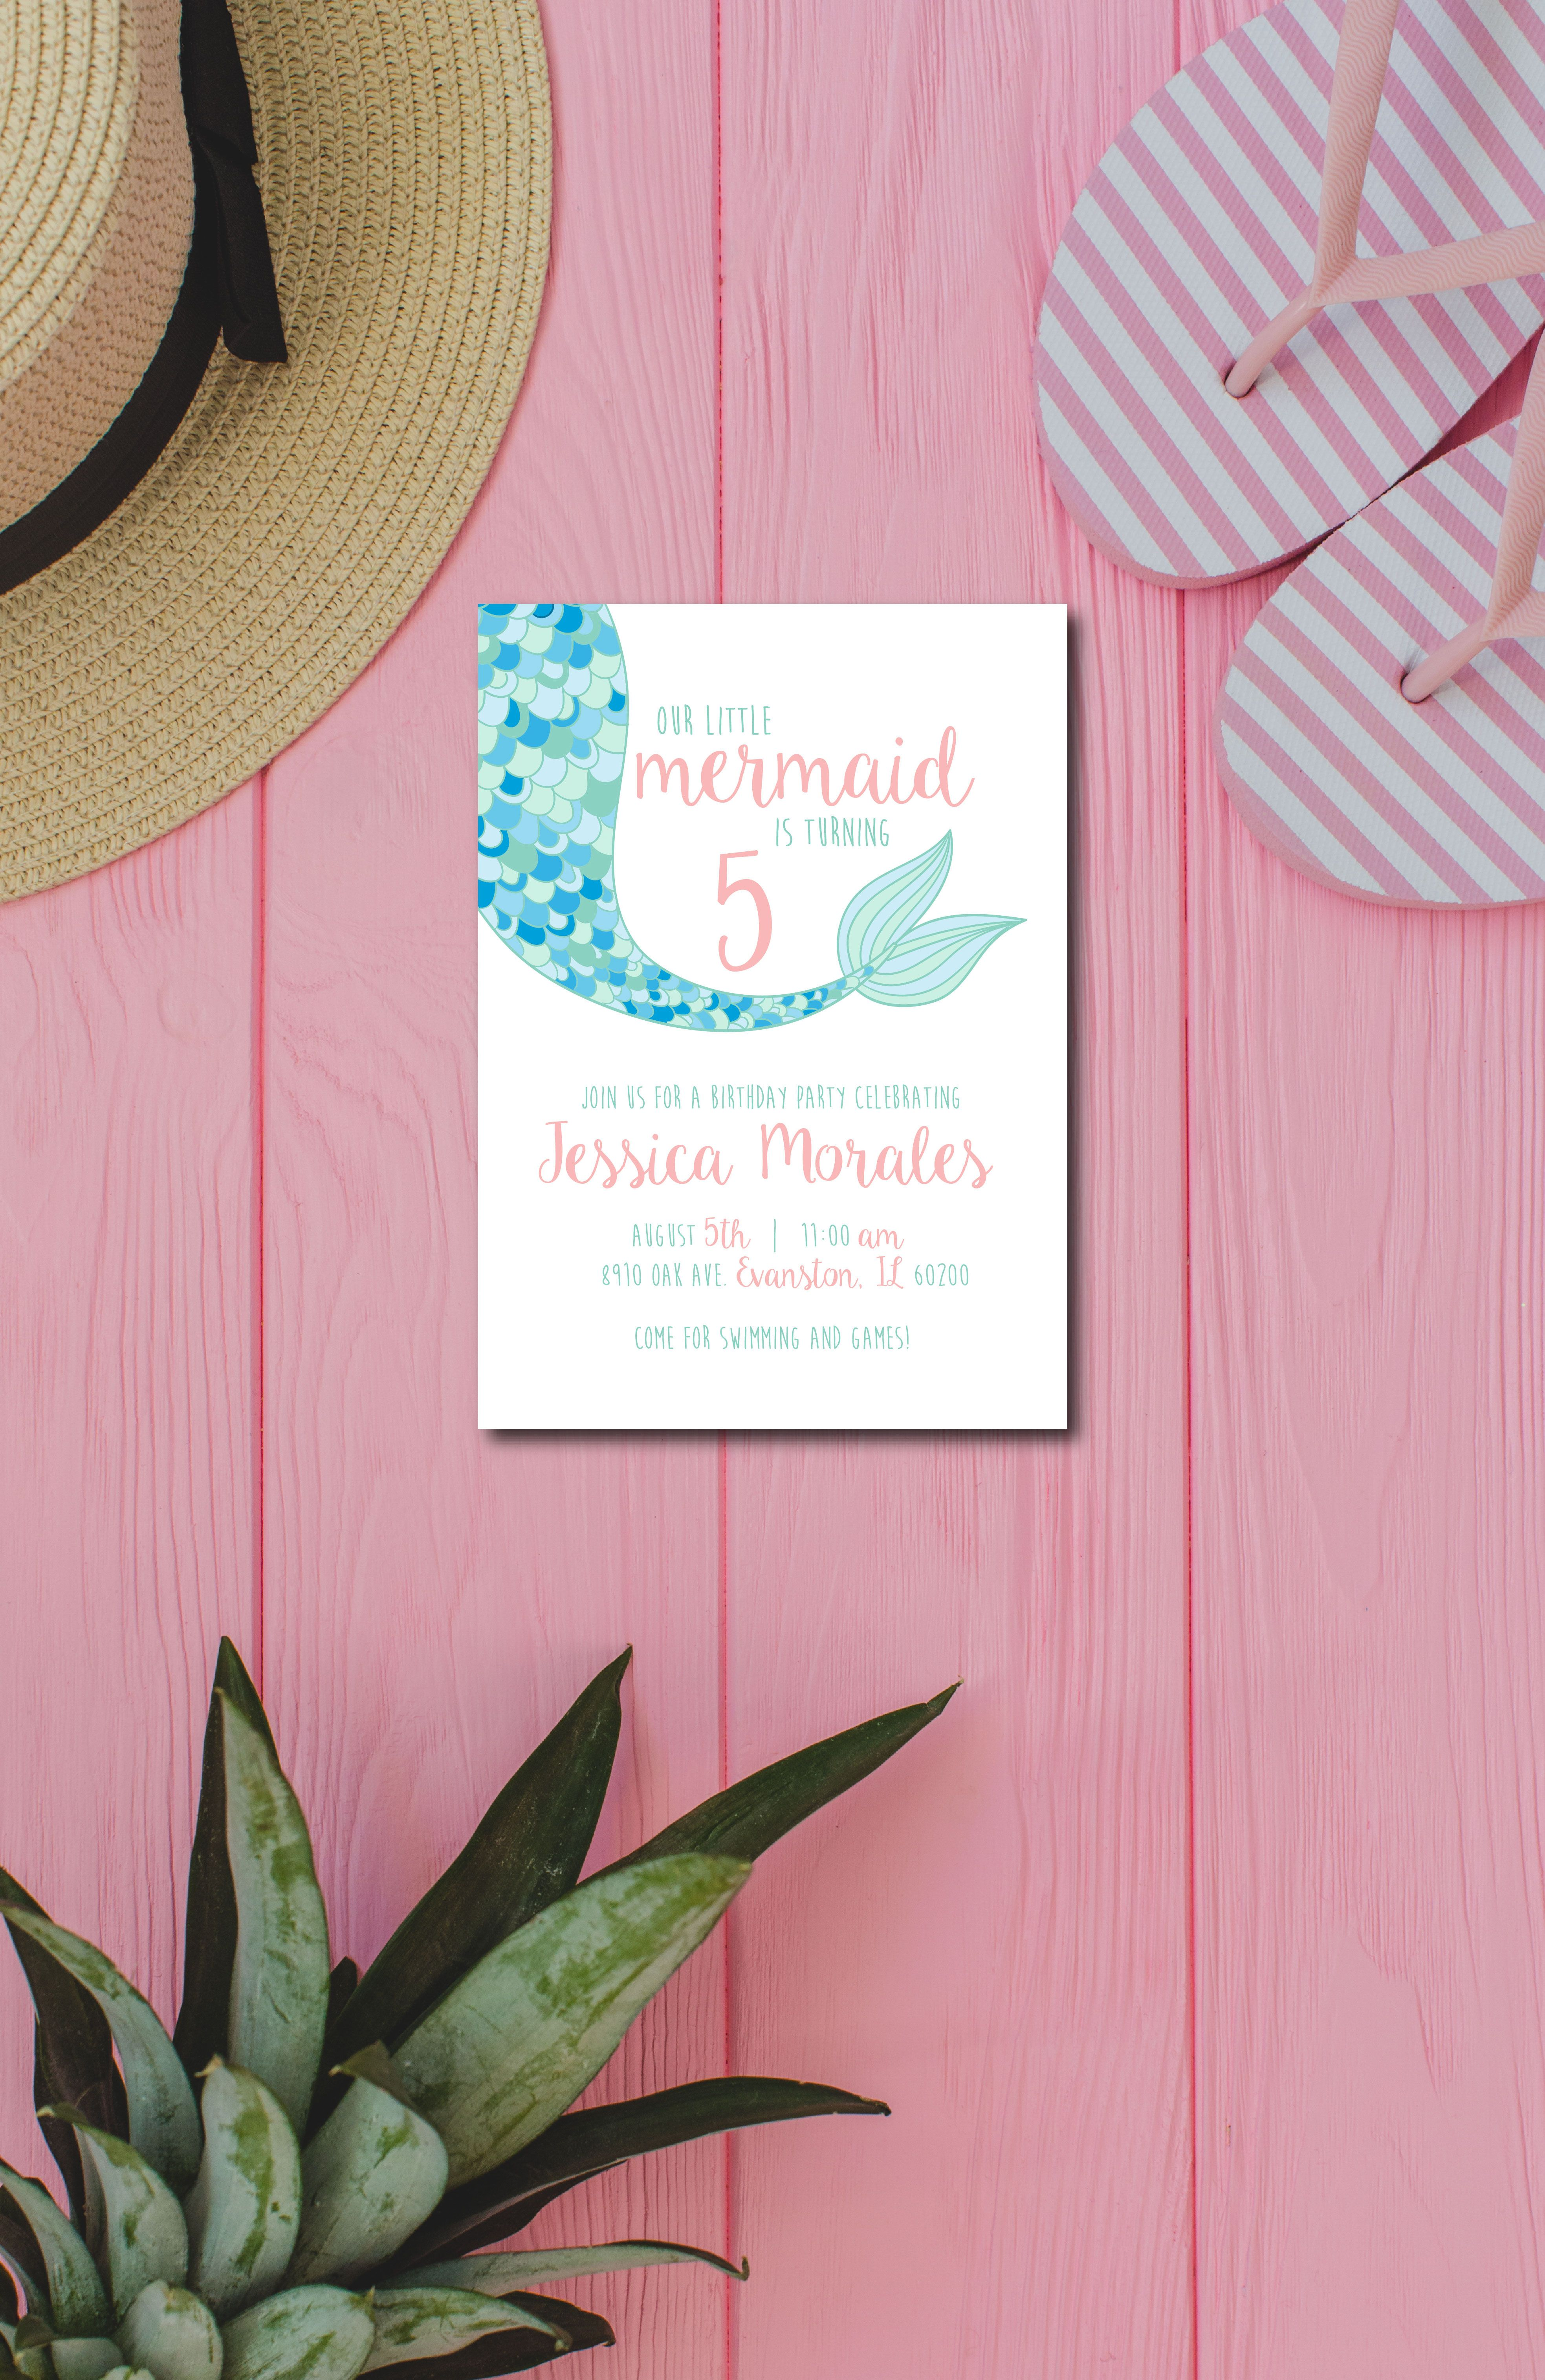 Cute Mermaid Birthday Party Invitation Perfect For A Summer Birthday Light